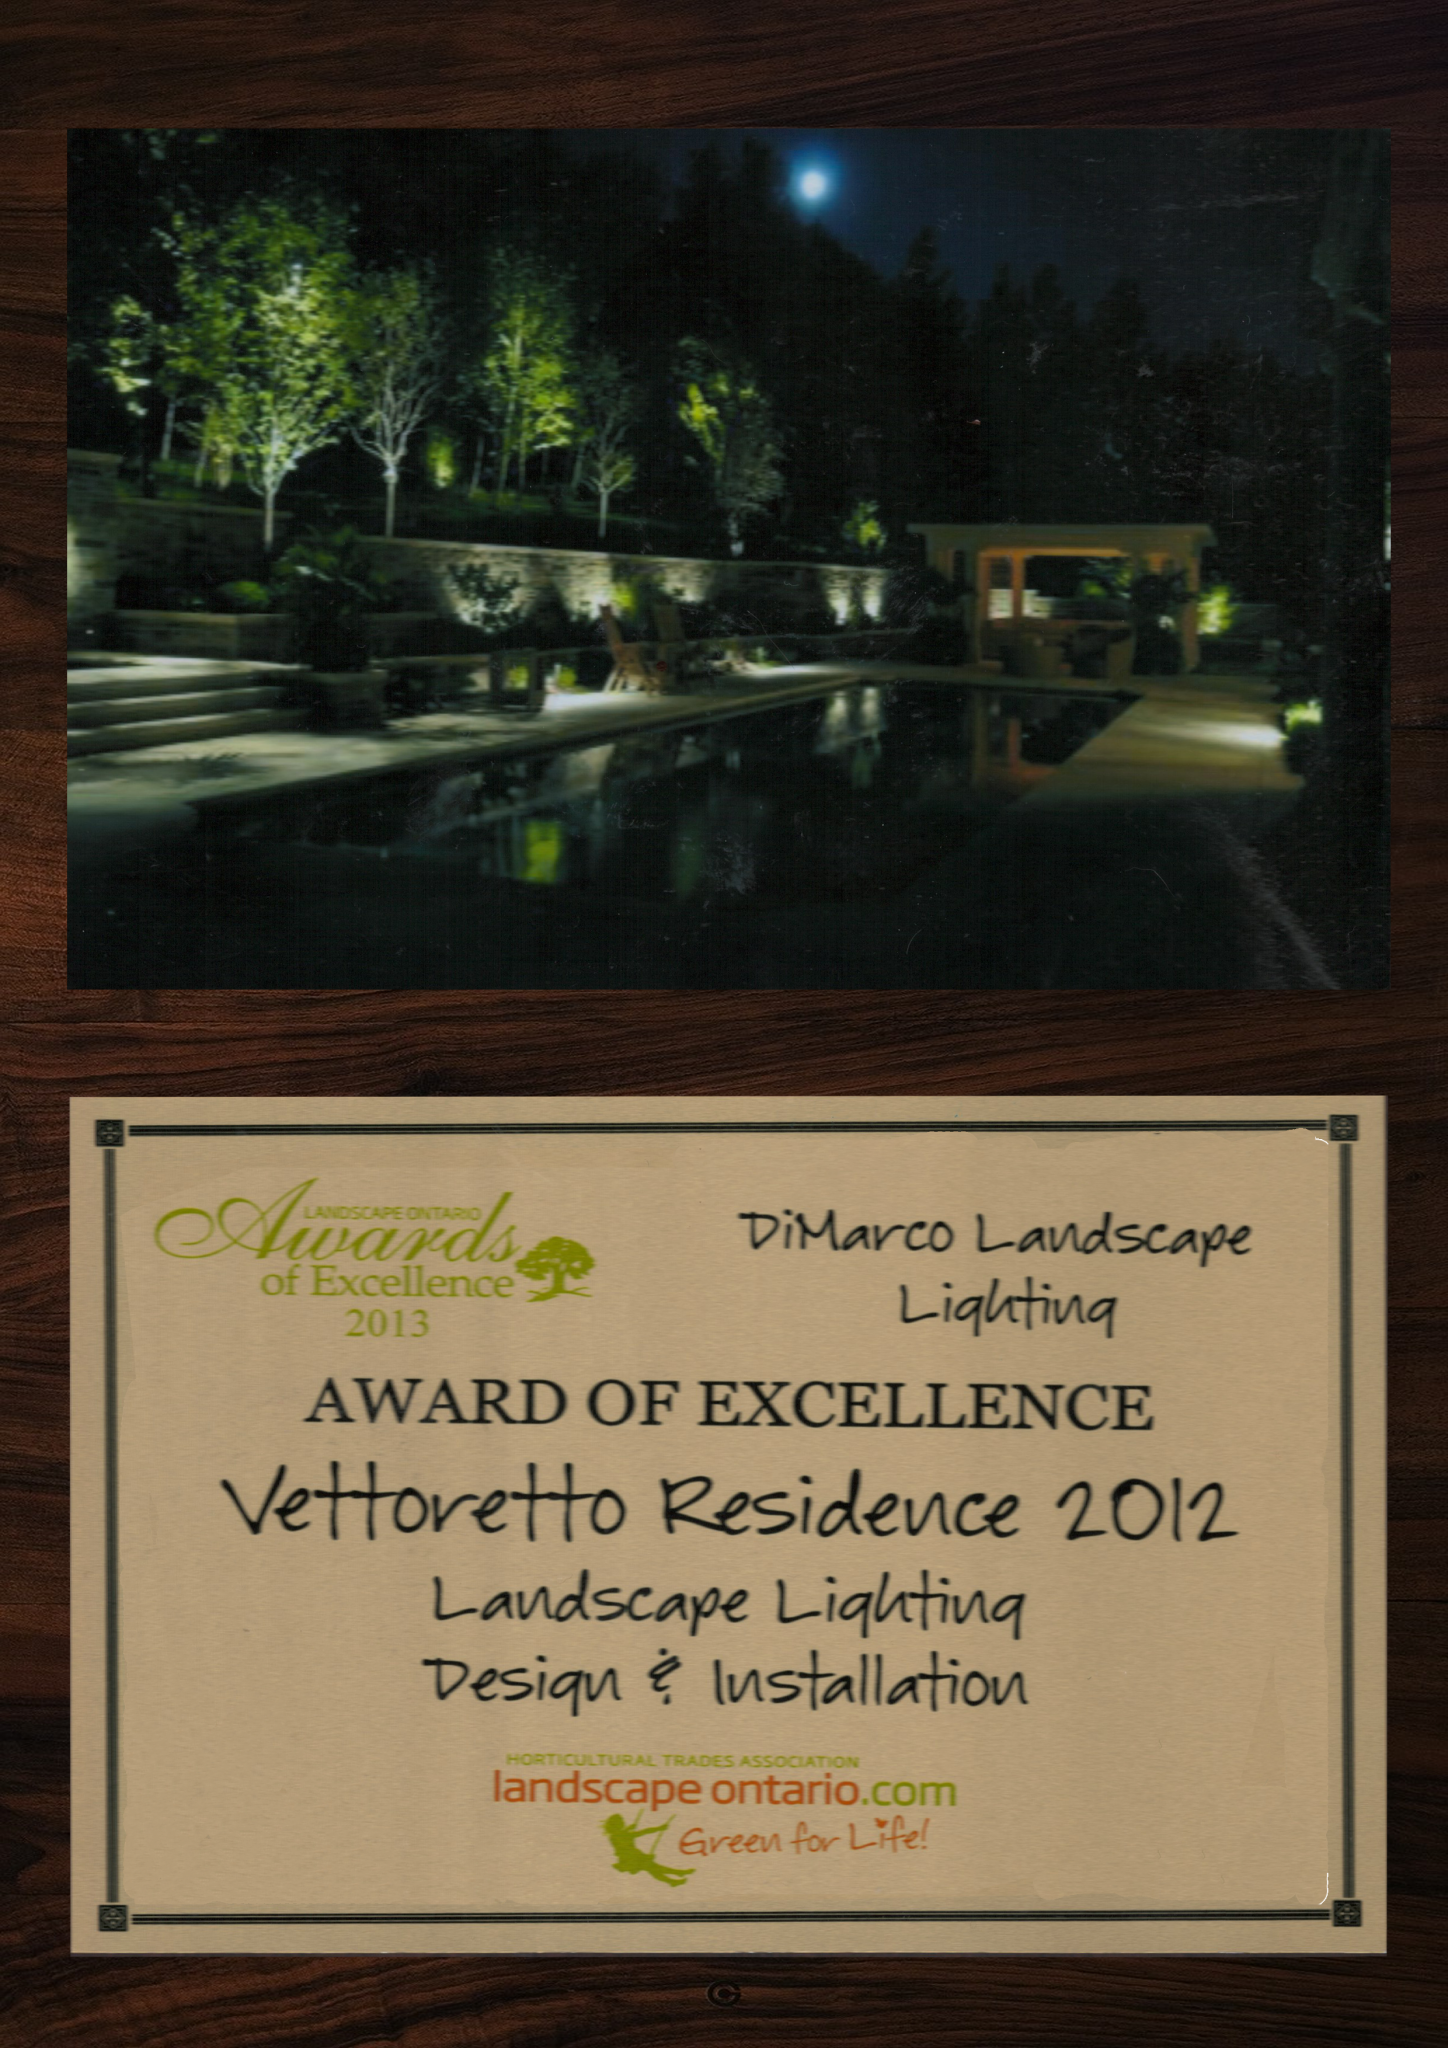 Home Dimarco Landscape Lighting Wiring Led Lights Some Of Our Awards